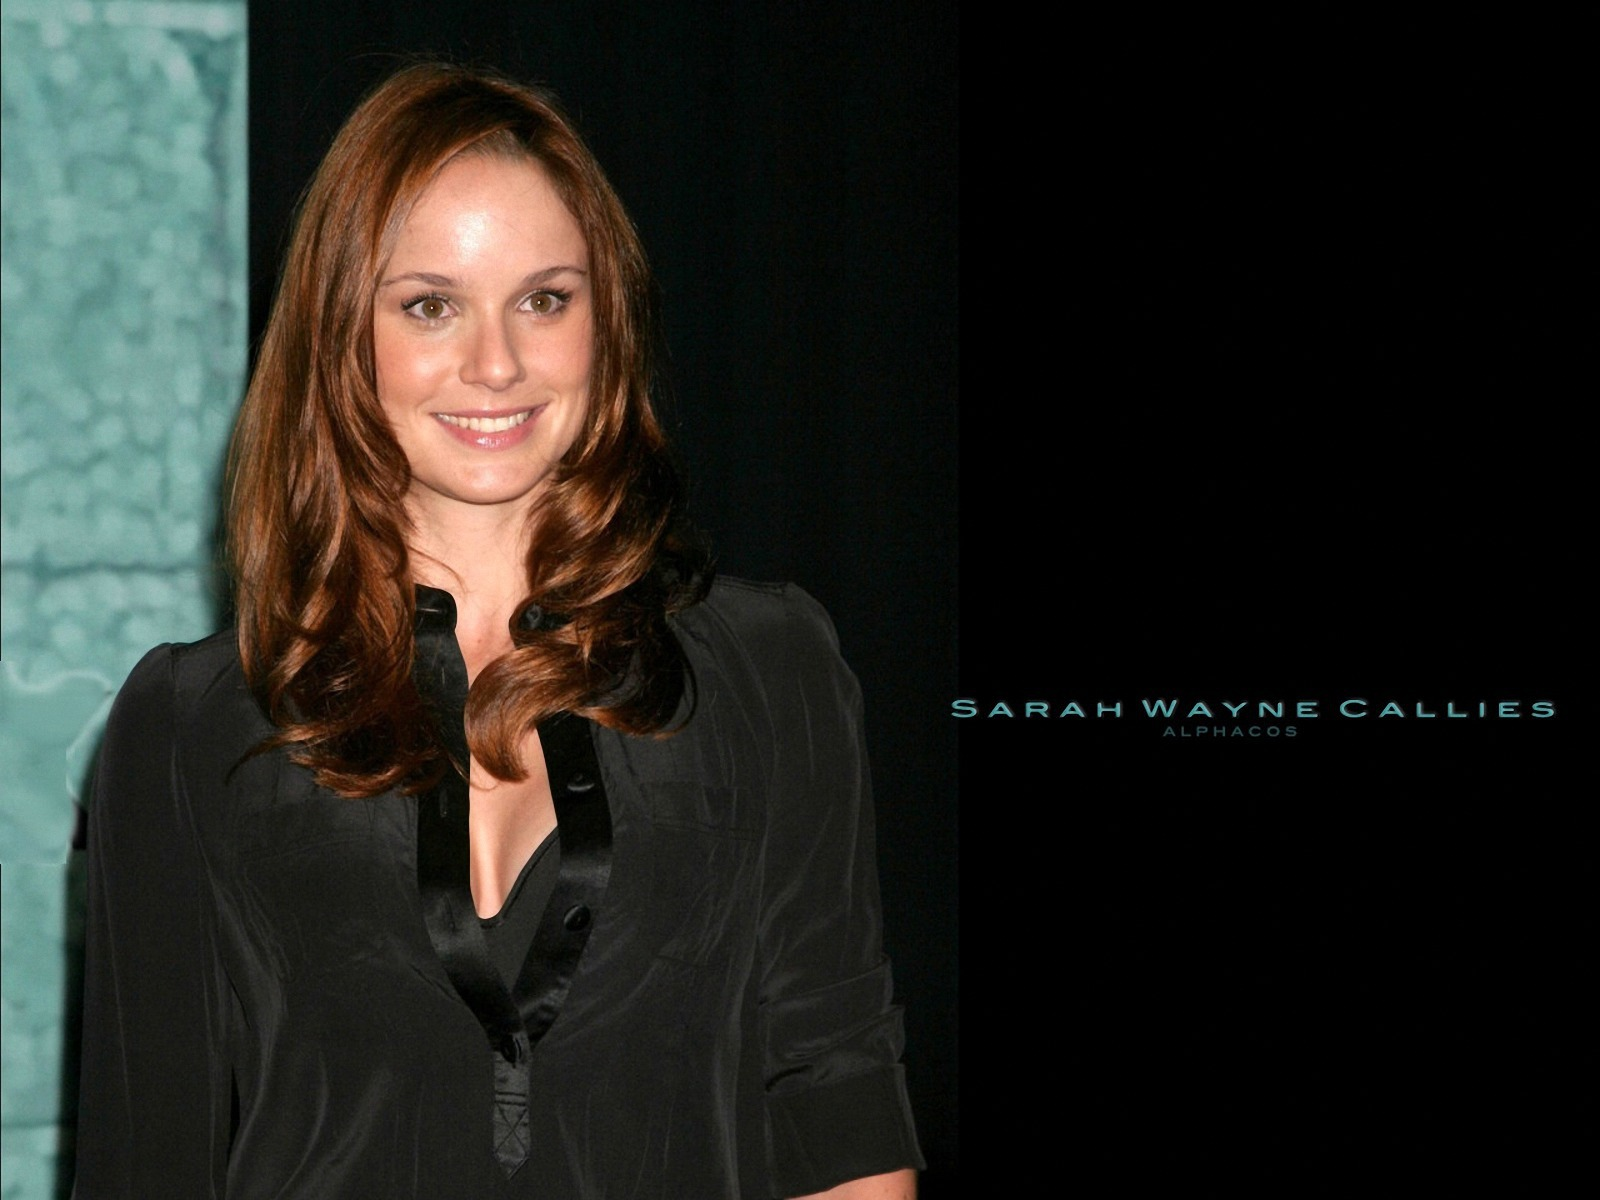 Sarah Wayne Callies Photos